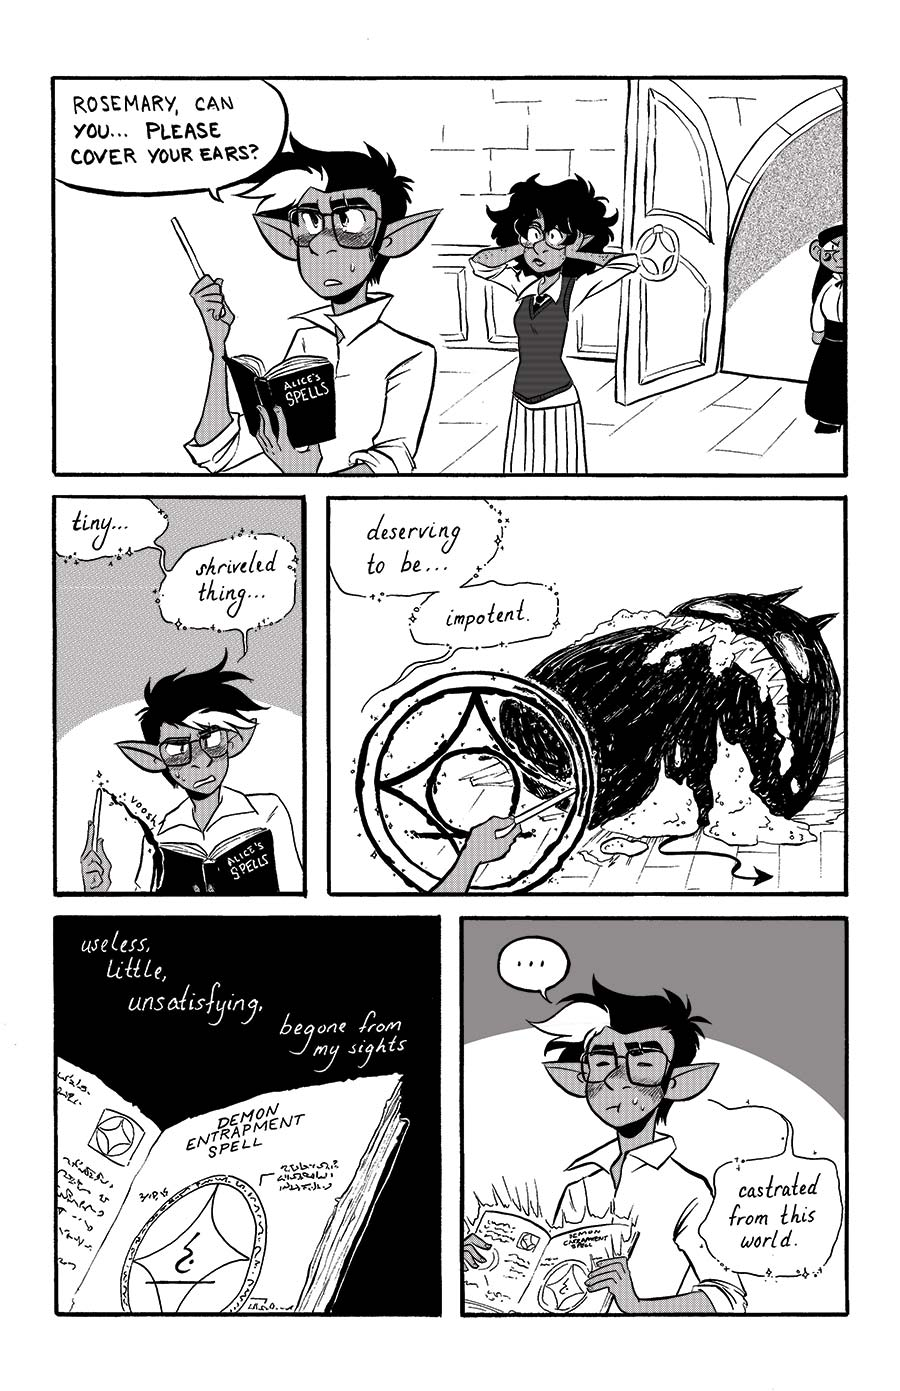 I hope it's clear now why Toivo is so embarrassed.